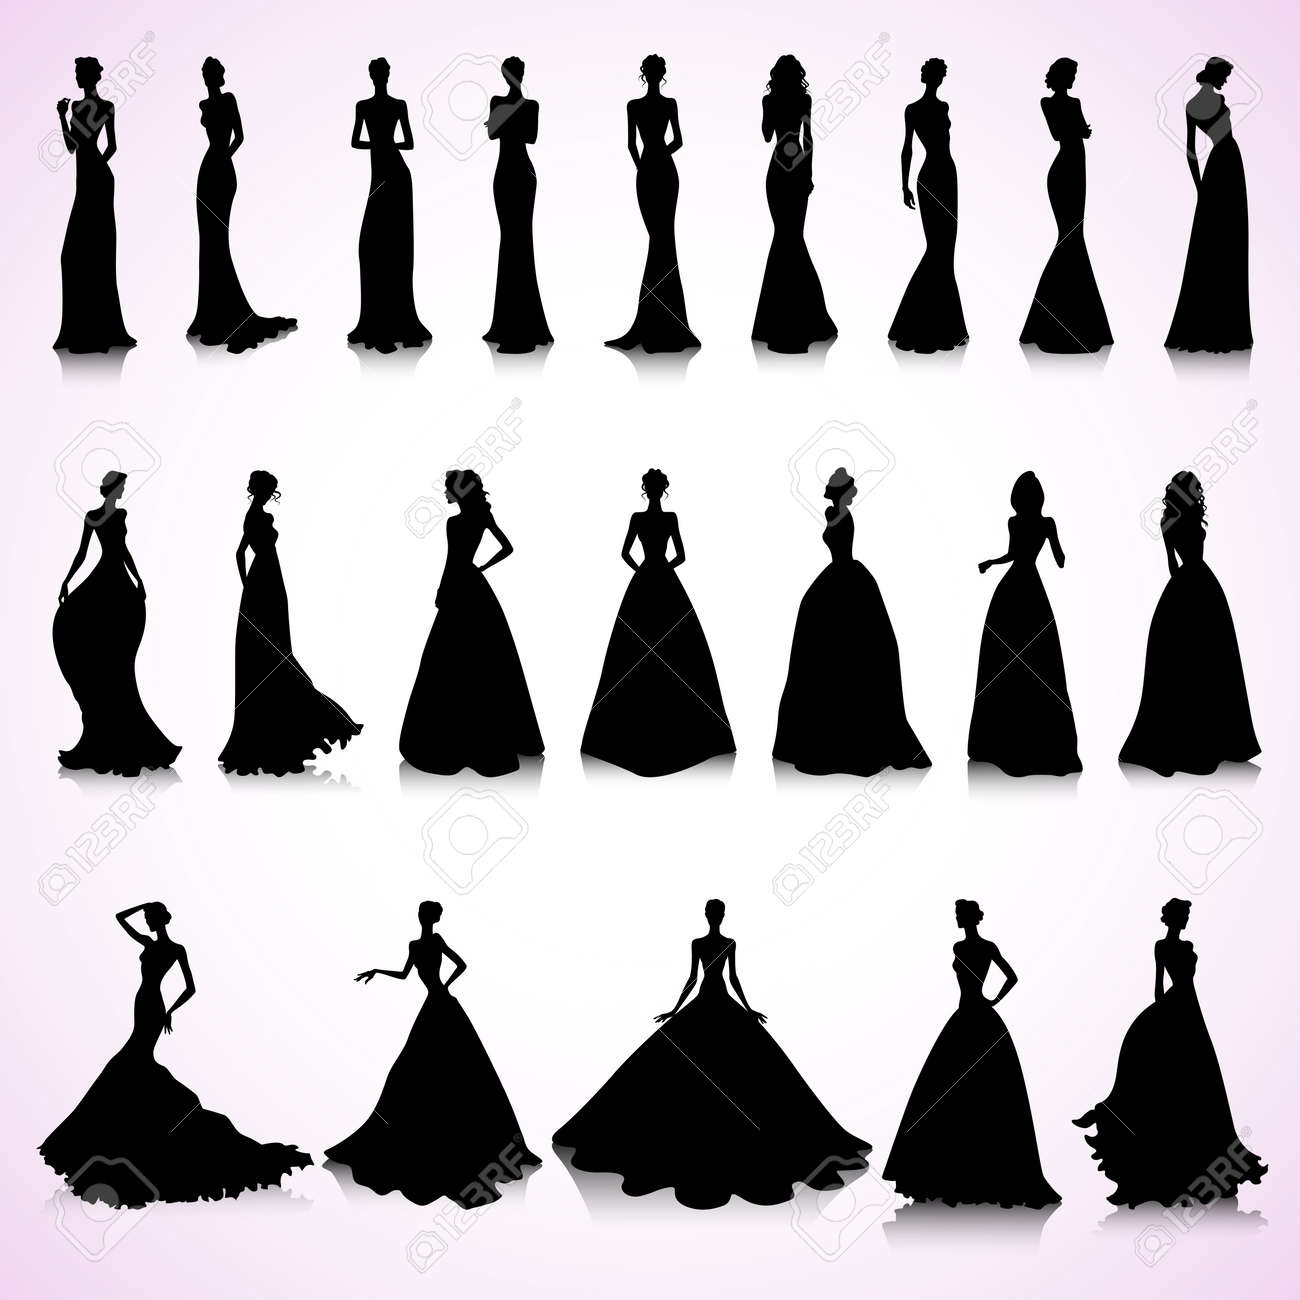 Set Of Female Silhouettes In Wedding Dresses Royalty Free Cliparts